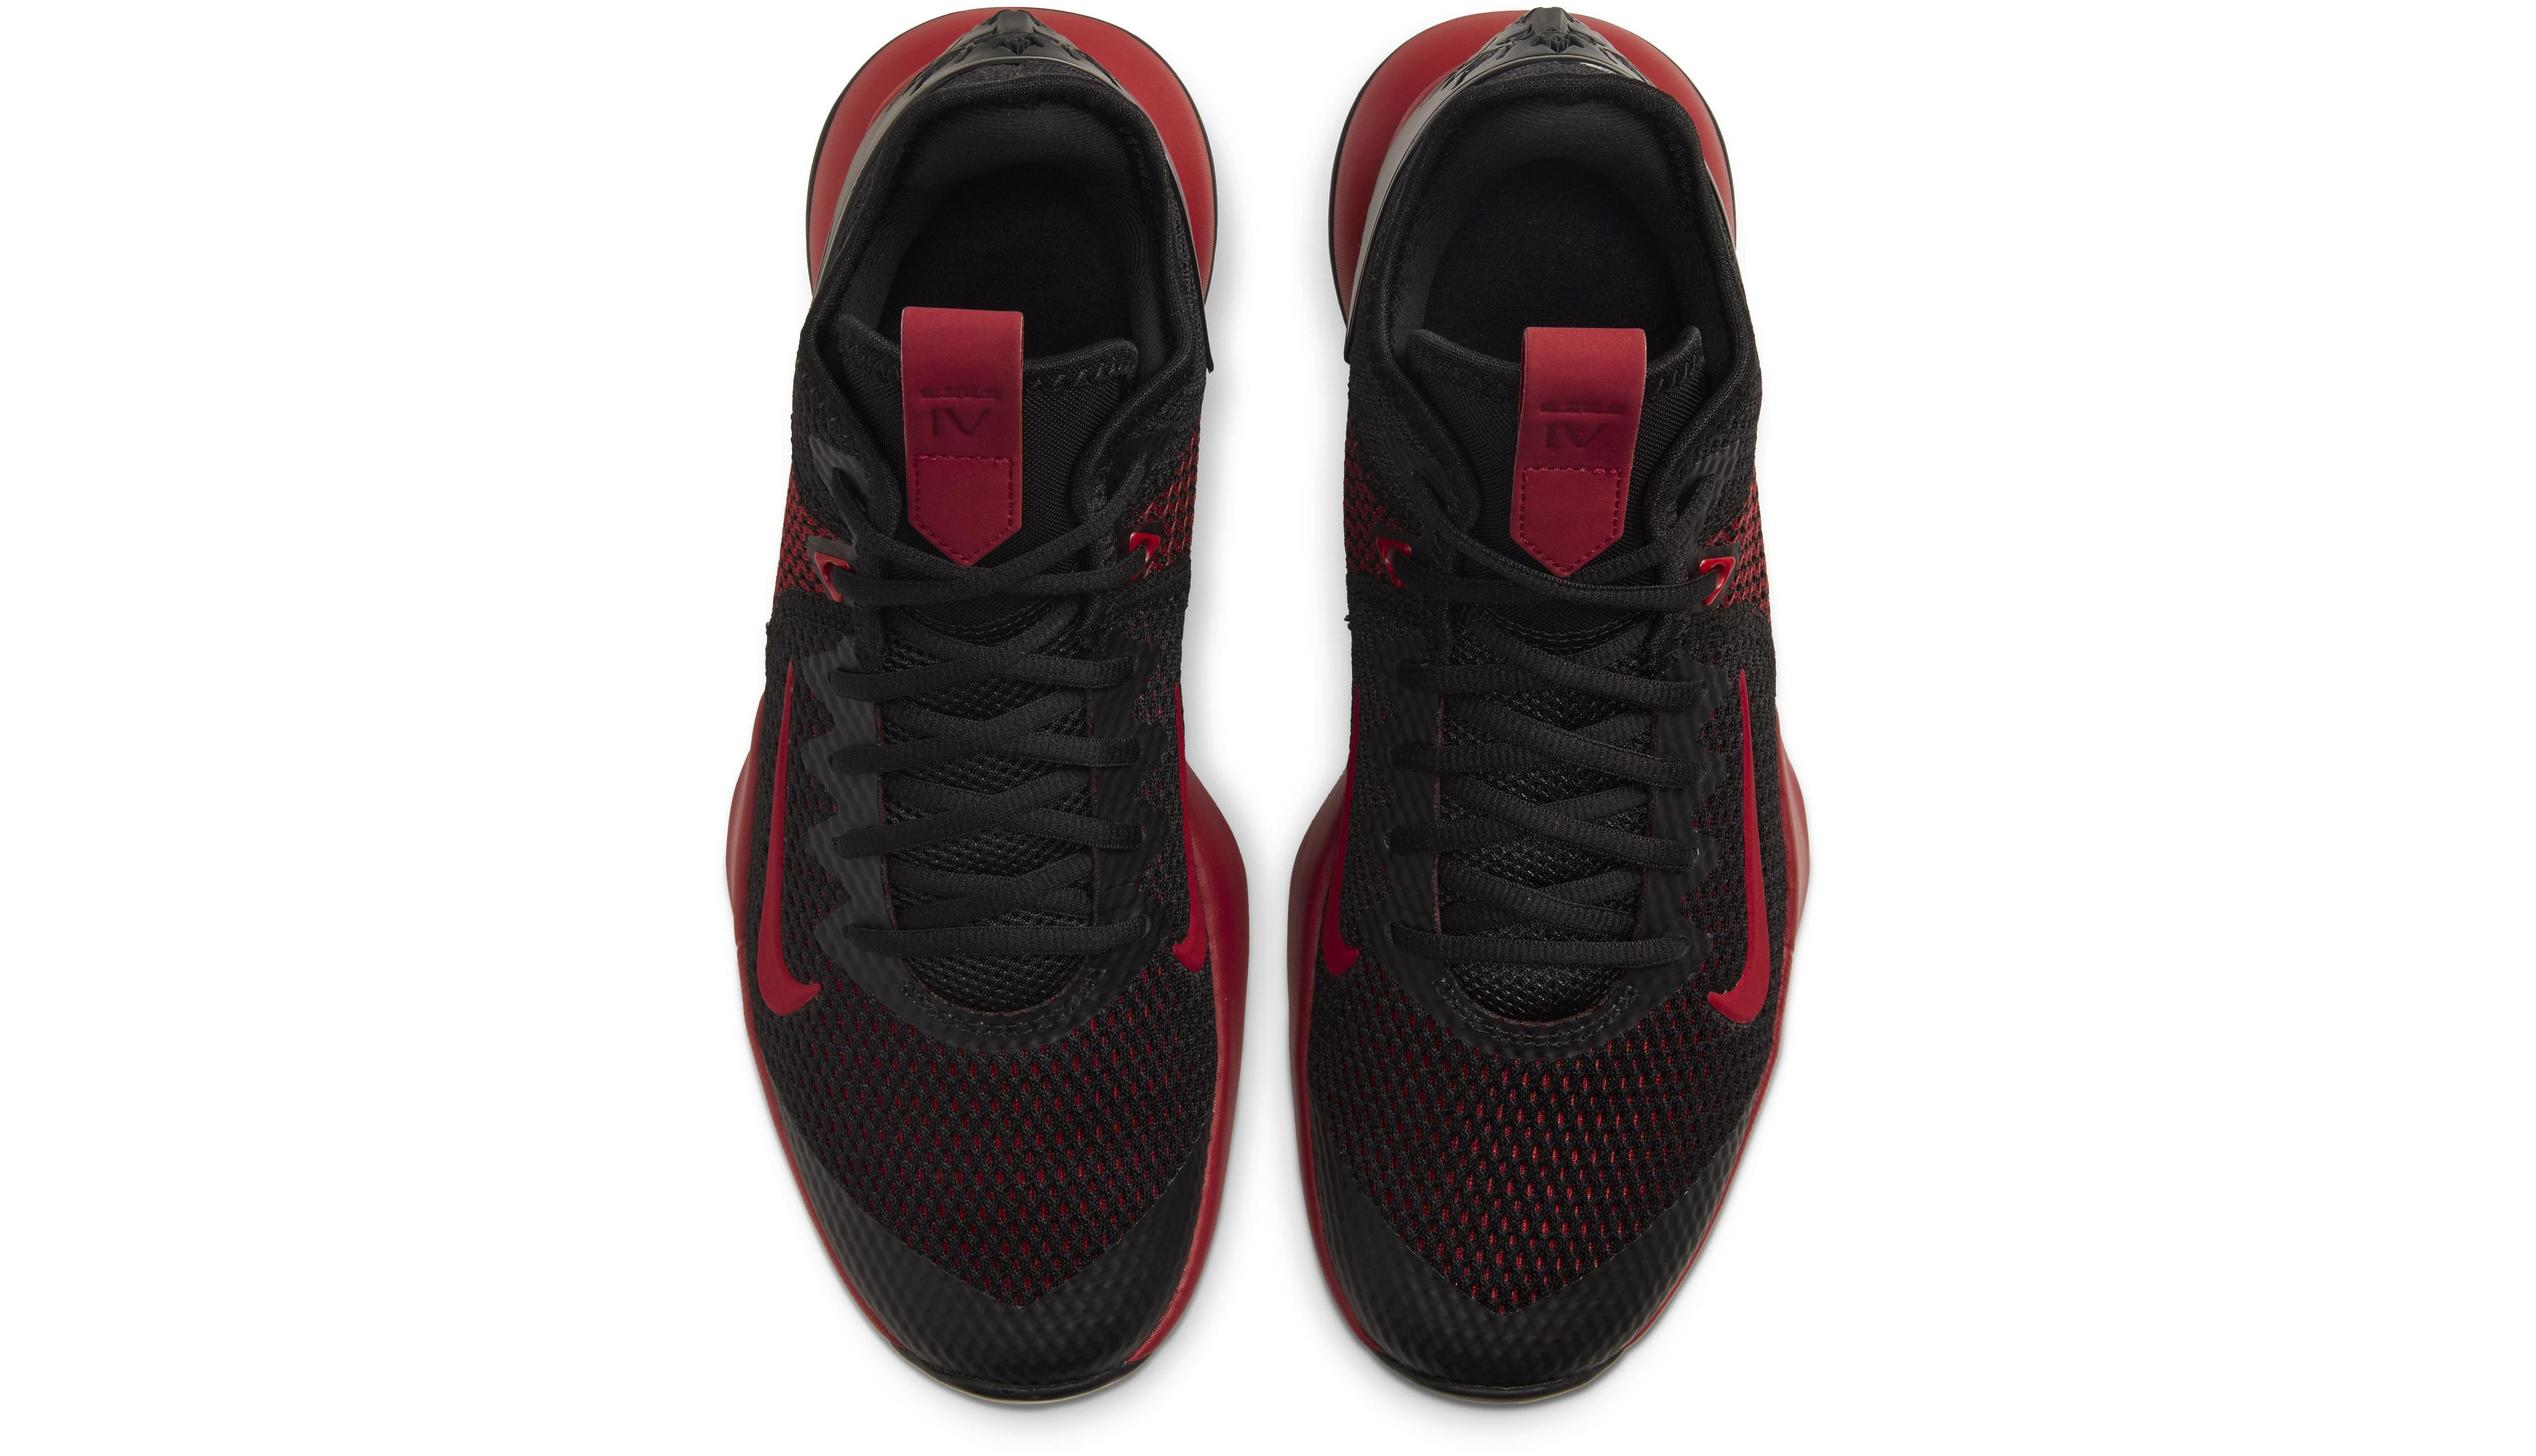 LeBron Witness 4 Black/Bright Crimson/Gym red